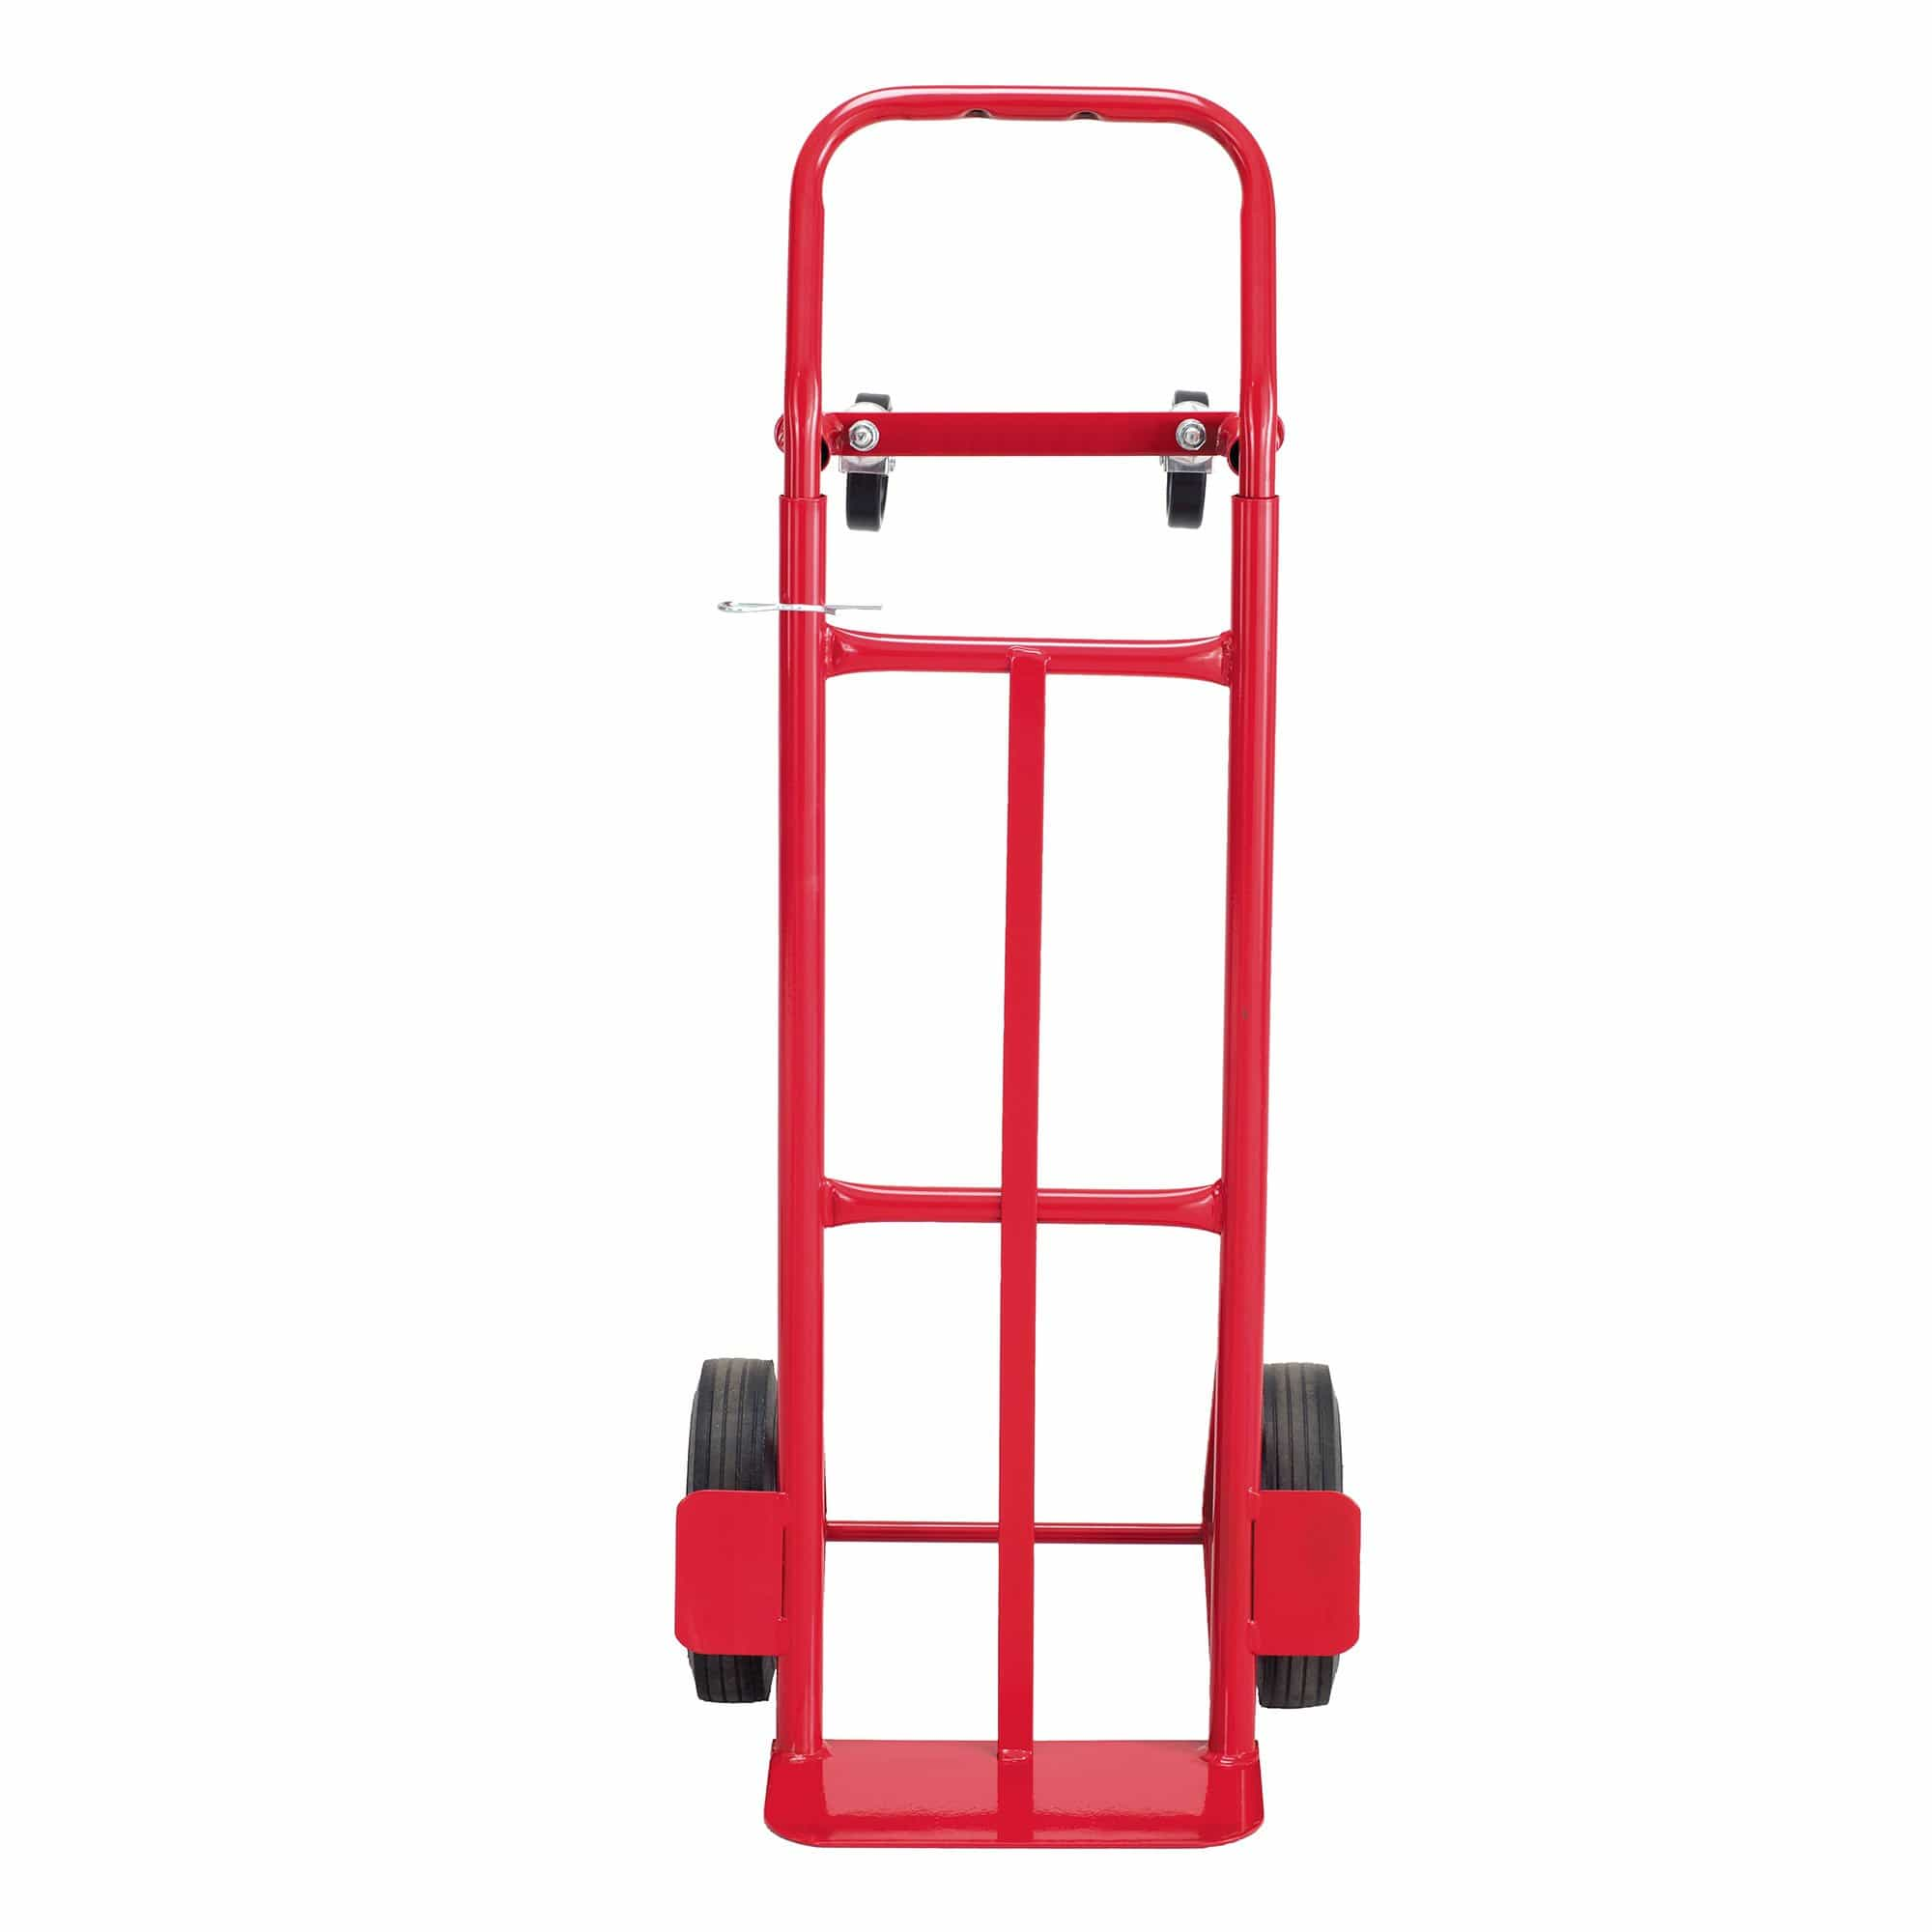 bedinhome - 4086R Safco Red powder coat finish Convertible Heavy-Duty 2-wheel Hand cart Truck - Safco - Steel Heavy Duty Hand Trucks